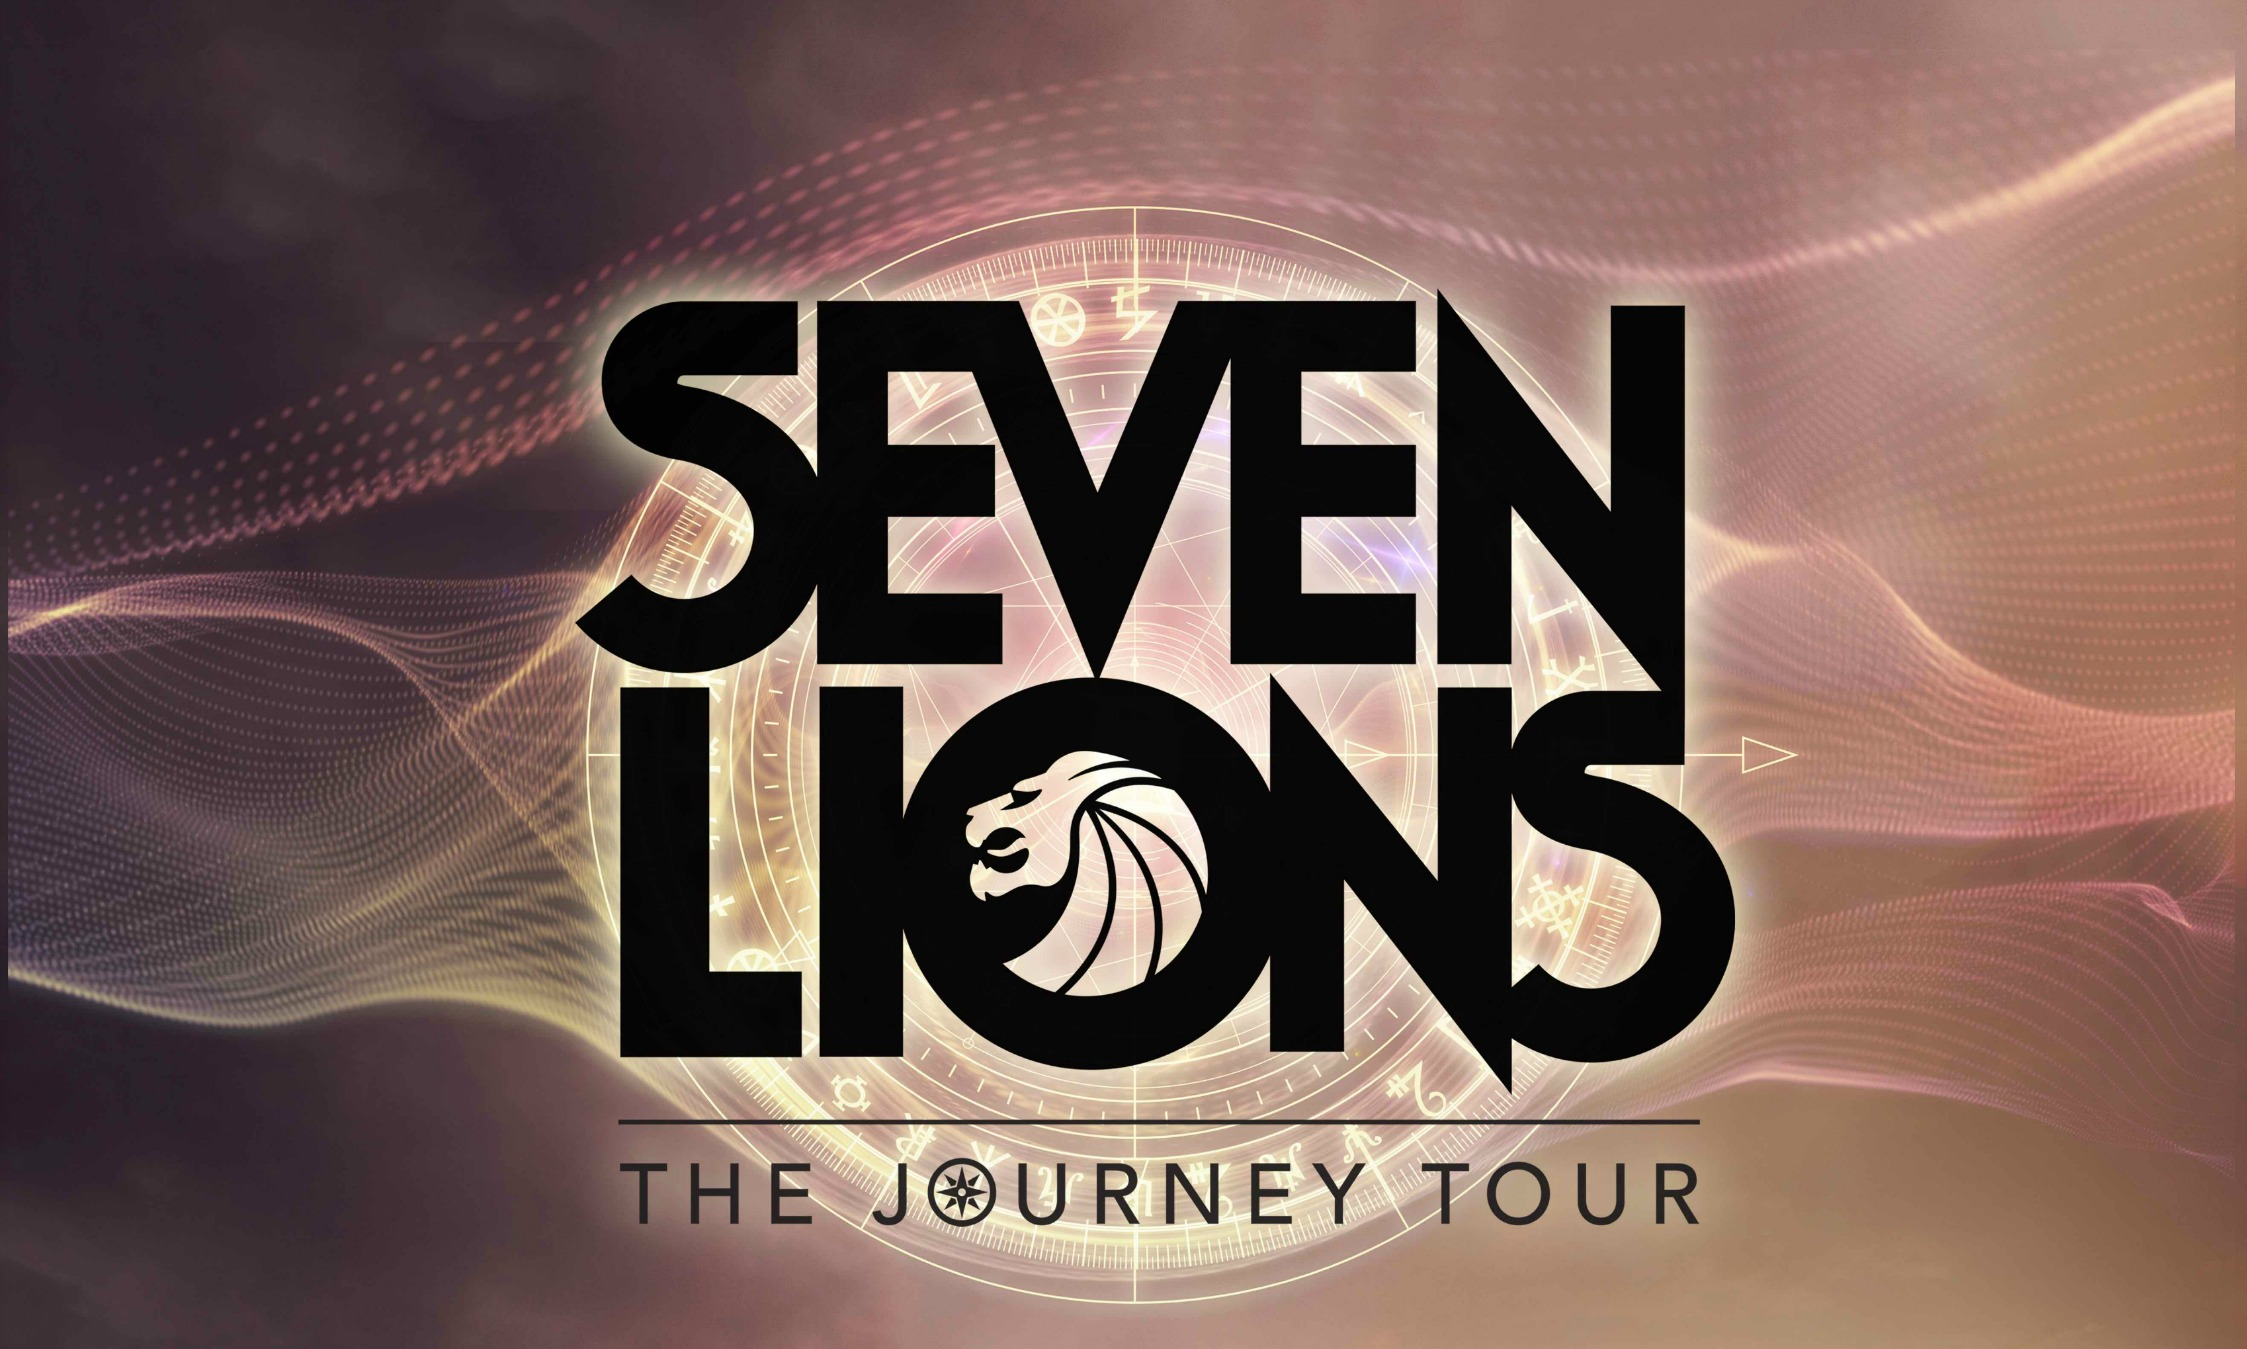 seven lions tour seven lions chicago seven lions indianapolis seven lions strangers seven lions falling away seven lions seattle seven lions days to come seven lions merch seven lions rush over me seven lions live seven lions seven lions album seven lions atlanta seven lions a way to say goodbye seven lions and illenium seven lions age seven lions and pegboard nerds seven lions album cover seven lions ama seven lions artist seven lions a way to say goodbye lyrics seven lions band seven lions boston seven lions buffalo seven lions below us seven lions background seven lions best songs seven lions beautiful seven lions beatport seven lions bogarts seven lions bay area seven lions creation seven lions concert seven lions coming home seven lions cusp seven lions creation lyrics seven lions cosmic love seven lions cleveland seven lions creation ep seven lions charlotte seven lions don't leave seven lions days to come lyrics seven lions december seven lions don't leave lyrics seven lions discography seven lions dc seven lions december lyrics seven lions detroit seven lions denver seven lions echostage seven lions ellie goulding seven lions edm seven lions events seven lions equipment seven lions ellie goulding lyrics seven lions essential mix seven lions europe tour seven lions falling away lyrics seven lions falling away festival seven lions flag seven lions facebook seven lions fevers seven lions falling away mitis seven lions fractals seven lions falling away remix seven lions fox theater seven lions genre seven lions great divide seven lions gear seven lions grum seven lions graduate seven lions gathering darkness seven lions goodbye seven lions great divide lyrics seven lions goodbye lyrics seven lions gainesville seven lions hollywood seven lions hoodie seven lions house of blues seven lions higher ground seven lions haliene seven lions higher love lyrics seven lions halloween seven lions house of blues tickets seven lions hits seven lions hour mix seven lions illenium seven lions isis seven lions instagram seven lions illenium rush over me seven lions interview seven lions i need you seven lions itunes seven lions id seven lions illenium tour i need you seven lions seven lions journey tour seven lions jason ross seven lions jeff montalvo seven lions jewel seven lions jason ross paul meany seven lions jewel nightclub seven lions july 26 seven lions july 25 seven lions japan seven lions june seven lions keep it close seven lions kandi seven lions keep it close lyrics seven lions kerli seven lions keep it close meaning seven lions kick seven lions kap slap seven lions koreatown seven lions keep it close mp3 seven lions krewella seven lions logo seven lions lyrics seven lions lucy seven lions lose myself seven lions leaving earth seven lions los angeles seven lions lights seven lions lucy lyrics seven lions label seven lions mix seven lions music seven lions meaning seven lions milwaukee seven lions movie seven lions menu seven lions myon & shane 54 - strangers lyrics seven lions mixcloud seven lions music video seven lions net worth seven lions new song seven lions nyc seven lions new album seven lions name seven lions new orleans seven lions norva seven lions new seven lions nepenthe seven lions new song 2016 seven lions oakland seven lions observatory seven lions outfit seven lions on my way to heaven seven lions occult seven lions owsla seven lions orlando seven lions osu seven lions orange county seven lions one more time seven lions perler seven lions palladium seven lions pegboard nerds seven lions philadelphia seven lions phoenix seven lions polarized seven lions playlist seven lions poster seven lions perler pattern seven lions polarize ep seven lions quotes seven lions restaurant seven lions rush over me lyrics seven lions remix seven lions raleigh seven lions real name seven lions reddit seven lions royal oak seven lions running to the sea seven lions rave seven lions soundcloud seven lions strangers lyrics seven lions songs seven lions shirt seven lions summer of the occult seven lions san diego seven lions set seven lions serpent of old seven lions twitter seven lions ticketmaster seven lions terminal 5 seven lions tracklist seven lions t shirt seven lions tattoo seven lions tove lo seven lions tabernacle seven lions the great divide t-shirt seven lions seven lions upcoming shows seven lions usc seven lions uniun seven lions ultra 2014 seven lions ultra 2013 seven lions universe seven lions unreleased seven lions ultra set list seven lions uses fl studio seven lions universe to me seven lions vinyl seven lions visuals seven lions vegas seven lions video seven lions vancouver seven lions vk seven lions valet parking seven lions velvetine seven lions vancouver 2014 seven lions venue 578 seven lions worlds apart seven lions wiki seven lions wamu seven lions worlds apart lyrics seven lions wife seven lions worlds apart ep seven lions website seven lions washington dc seven lions way to say goodbye seven lions worlds apart download seven lions & illenium seven lions xilent seven lions xilent the fall seven lions & jason ross seven lions youtube seven lions you got to go seven lions you gotta go seven lions yelp seven lions you're the universe to me seven lions you gotta go lyrics seven lions you got to go mp3 seven lions youtube mix seven lions you got to go lyrics seven lions zip seven lions zedd seven lions zeds dead seven lions zedd strangers to find lyrics seven lions ep zip seven lions 1001 seven lions 10/15 seven lions 10/22 seven lions 10/20 seven lions 130 s michigan ave seven lions 1 hour mix seven lions may 1 seven lions top 10 songs seven lions top 10 seven lions april 17 seven lions 2016 seven lions 2017 seven lions 2015 seven lions 2014 seven lions 2013 seven lions 2014 mix seven lions 2014 edc seven lions 2015 mix seven lions 2014 album seven lions 2015 edc born 2 run seven lions seven lions 3lau seven lions 320 seven lions strangers 320 seven lions lucy 320 seven lions strangers 320kbps download seven lions worlds apart 320 seven lions strangers mp3 320kbps seven lions strangers mp3 320 seven lions don't leave 320kbps seven lions lose myself 320 strangers seven lions 4sh seven lions 54 seven lions march 5 seven lions top 50 seven lions shane 54 strangers lyrics seven lions myon shane 54 strangers lyrics seven lions myon shane 54 feat tove lo strangers lyrics seven lions myon shane 54 strangers mp3 top 5 seven lions songs seven lions december 6 6 seven lions strangers seven lions march 7 seven lions march 8 the journey tour after party the journey tour ruby skye the journey tourism the journey tours & travels the journey tourism advisors the journey tour craig morgan the journey tours travels indore live the journey tours 911 the journey tour the journey concert tour the journey tour the journey tour 2016 the journey uk tour journeys noise tour the journey of tour de france journey the frontiers tour journey the frontiers tour album the difference between journey and tour a foreigners journey tour dates journey the band tour journey the band tour 2014 journey the frontiers tour cd the paradiso journey college tour journey the frontiers tour cd review journey the frontiers tour cd download the journey tour dates journey the escape tour e journey tour journey the frontiers tour vinyl journey the frontiers tour 2014 journey to the homeland tour i dream journey tour the legendary journey - lions tour 2013 l s journey tours mishka the journey tour the band journey on tour on the go tours journey to angkor wat tourney 4 the journey threshold for the journey tour threshold for the journey tour 2014 journey through the 80s tour